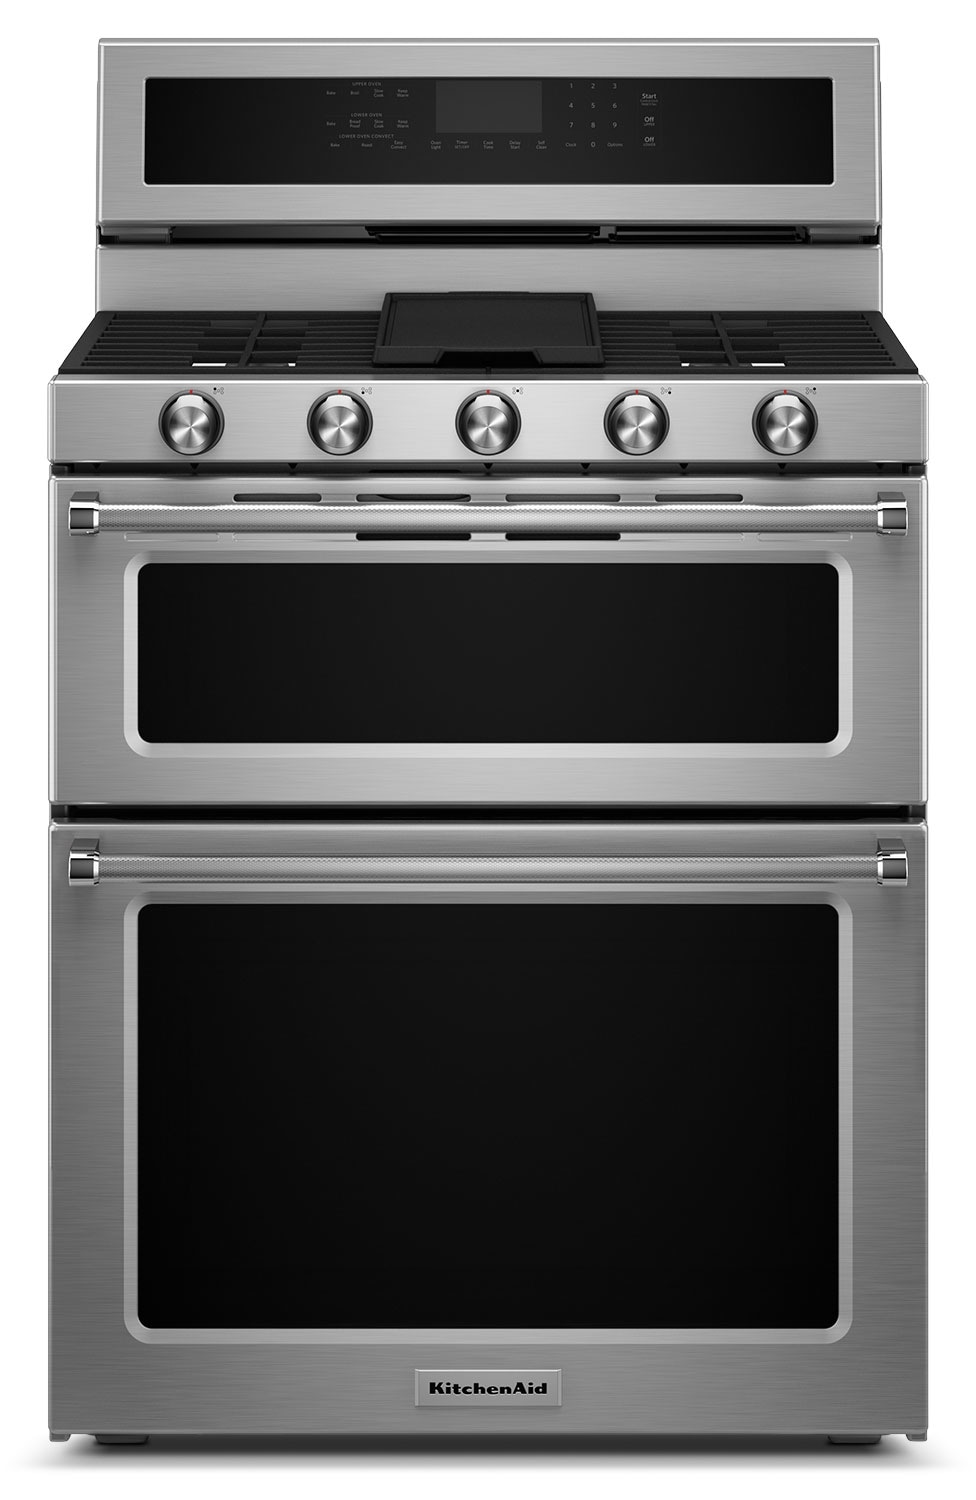 KitchenAid 6.0 Cu. Ft. Dual-Fuel Double-Oven Range - Stainless Steel